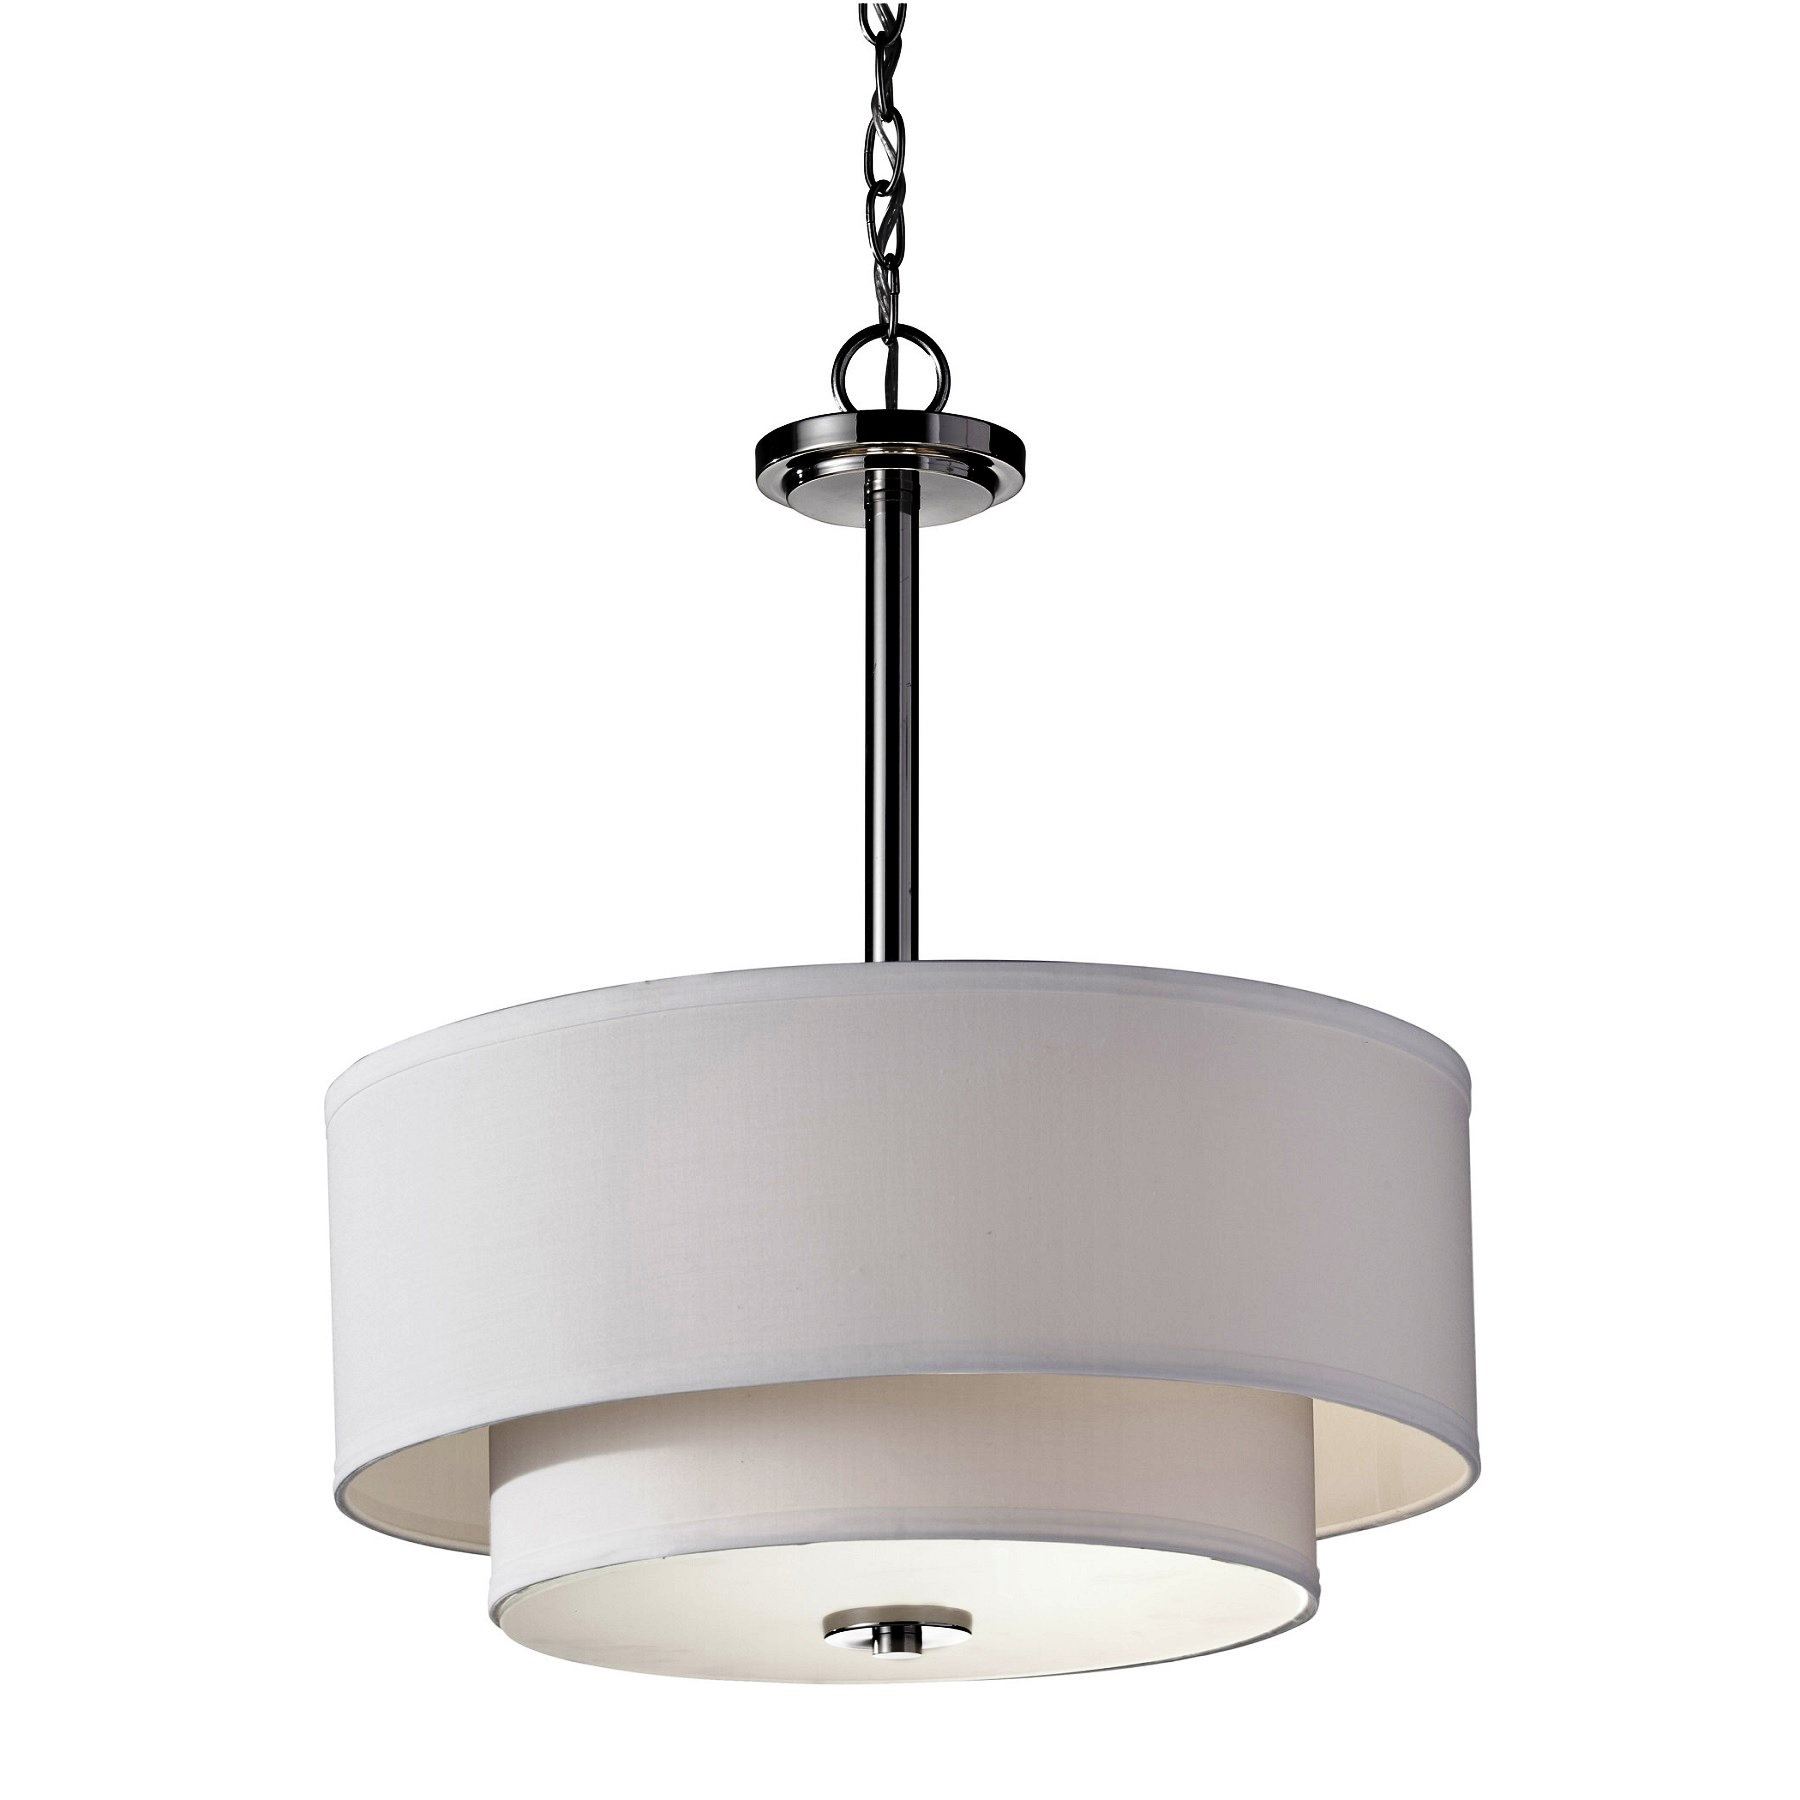 Feiss Malibu 3 Light Drum Pendant L Brilliant Source Lighting